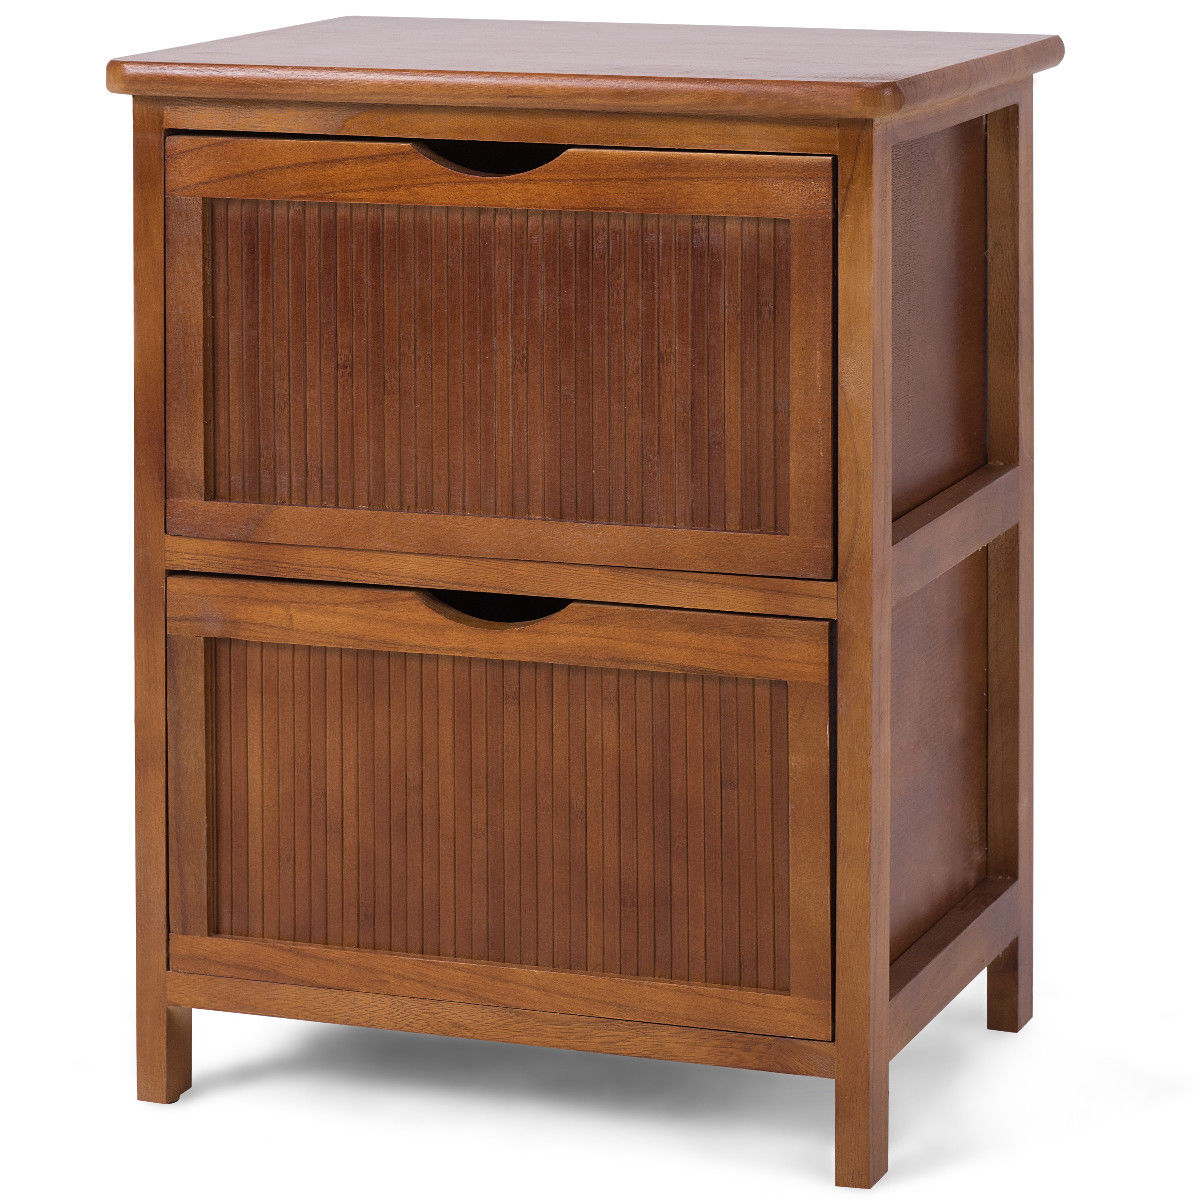 Giantex 2 Drawers Nightstand Contemporary Vintage Bedside Table Solid Wood End table Bedroom Furniture HW57057Giantex 2 Drawers Nightstand Contemporary Vintage Bedside Table Solid Wood End table Bedroom Furniture HW57057